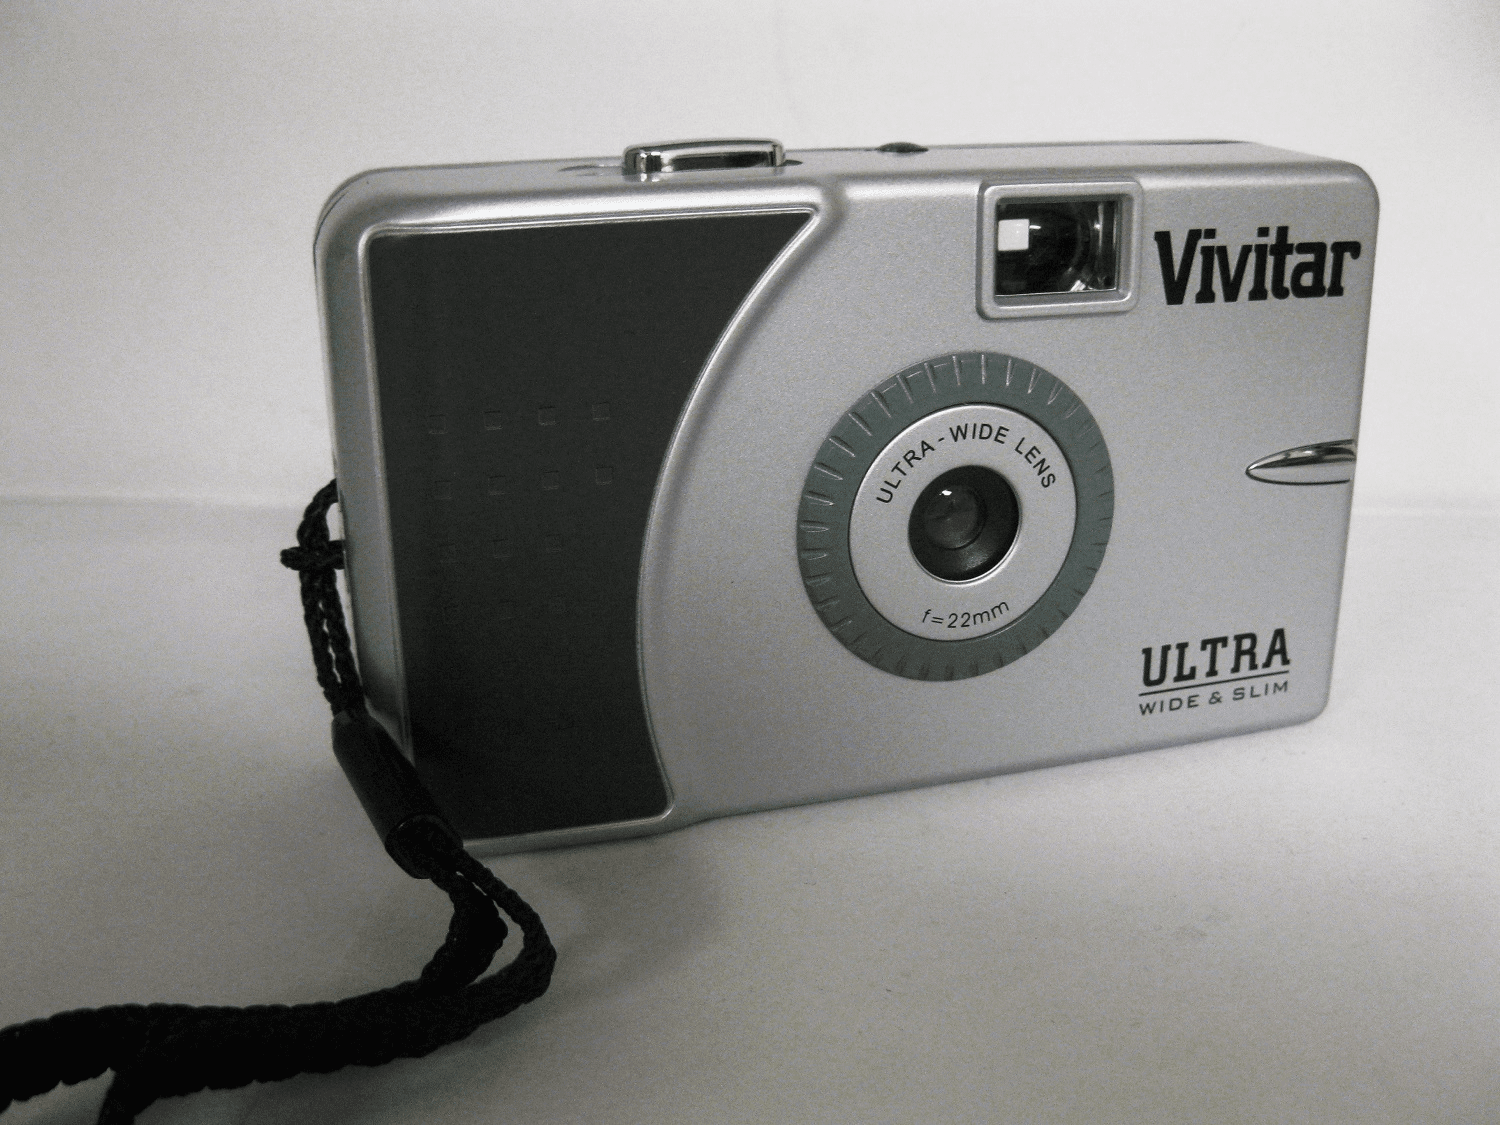 Vivitar Wide & Slim Camera with 22mm Wide Angle Lens